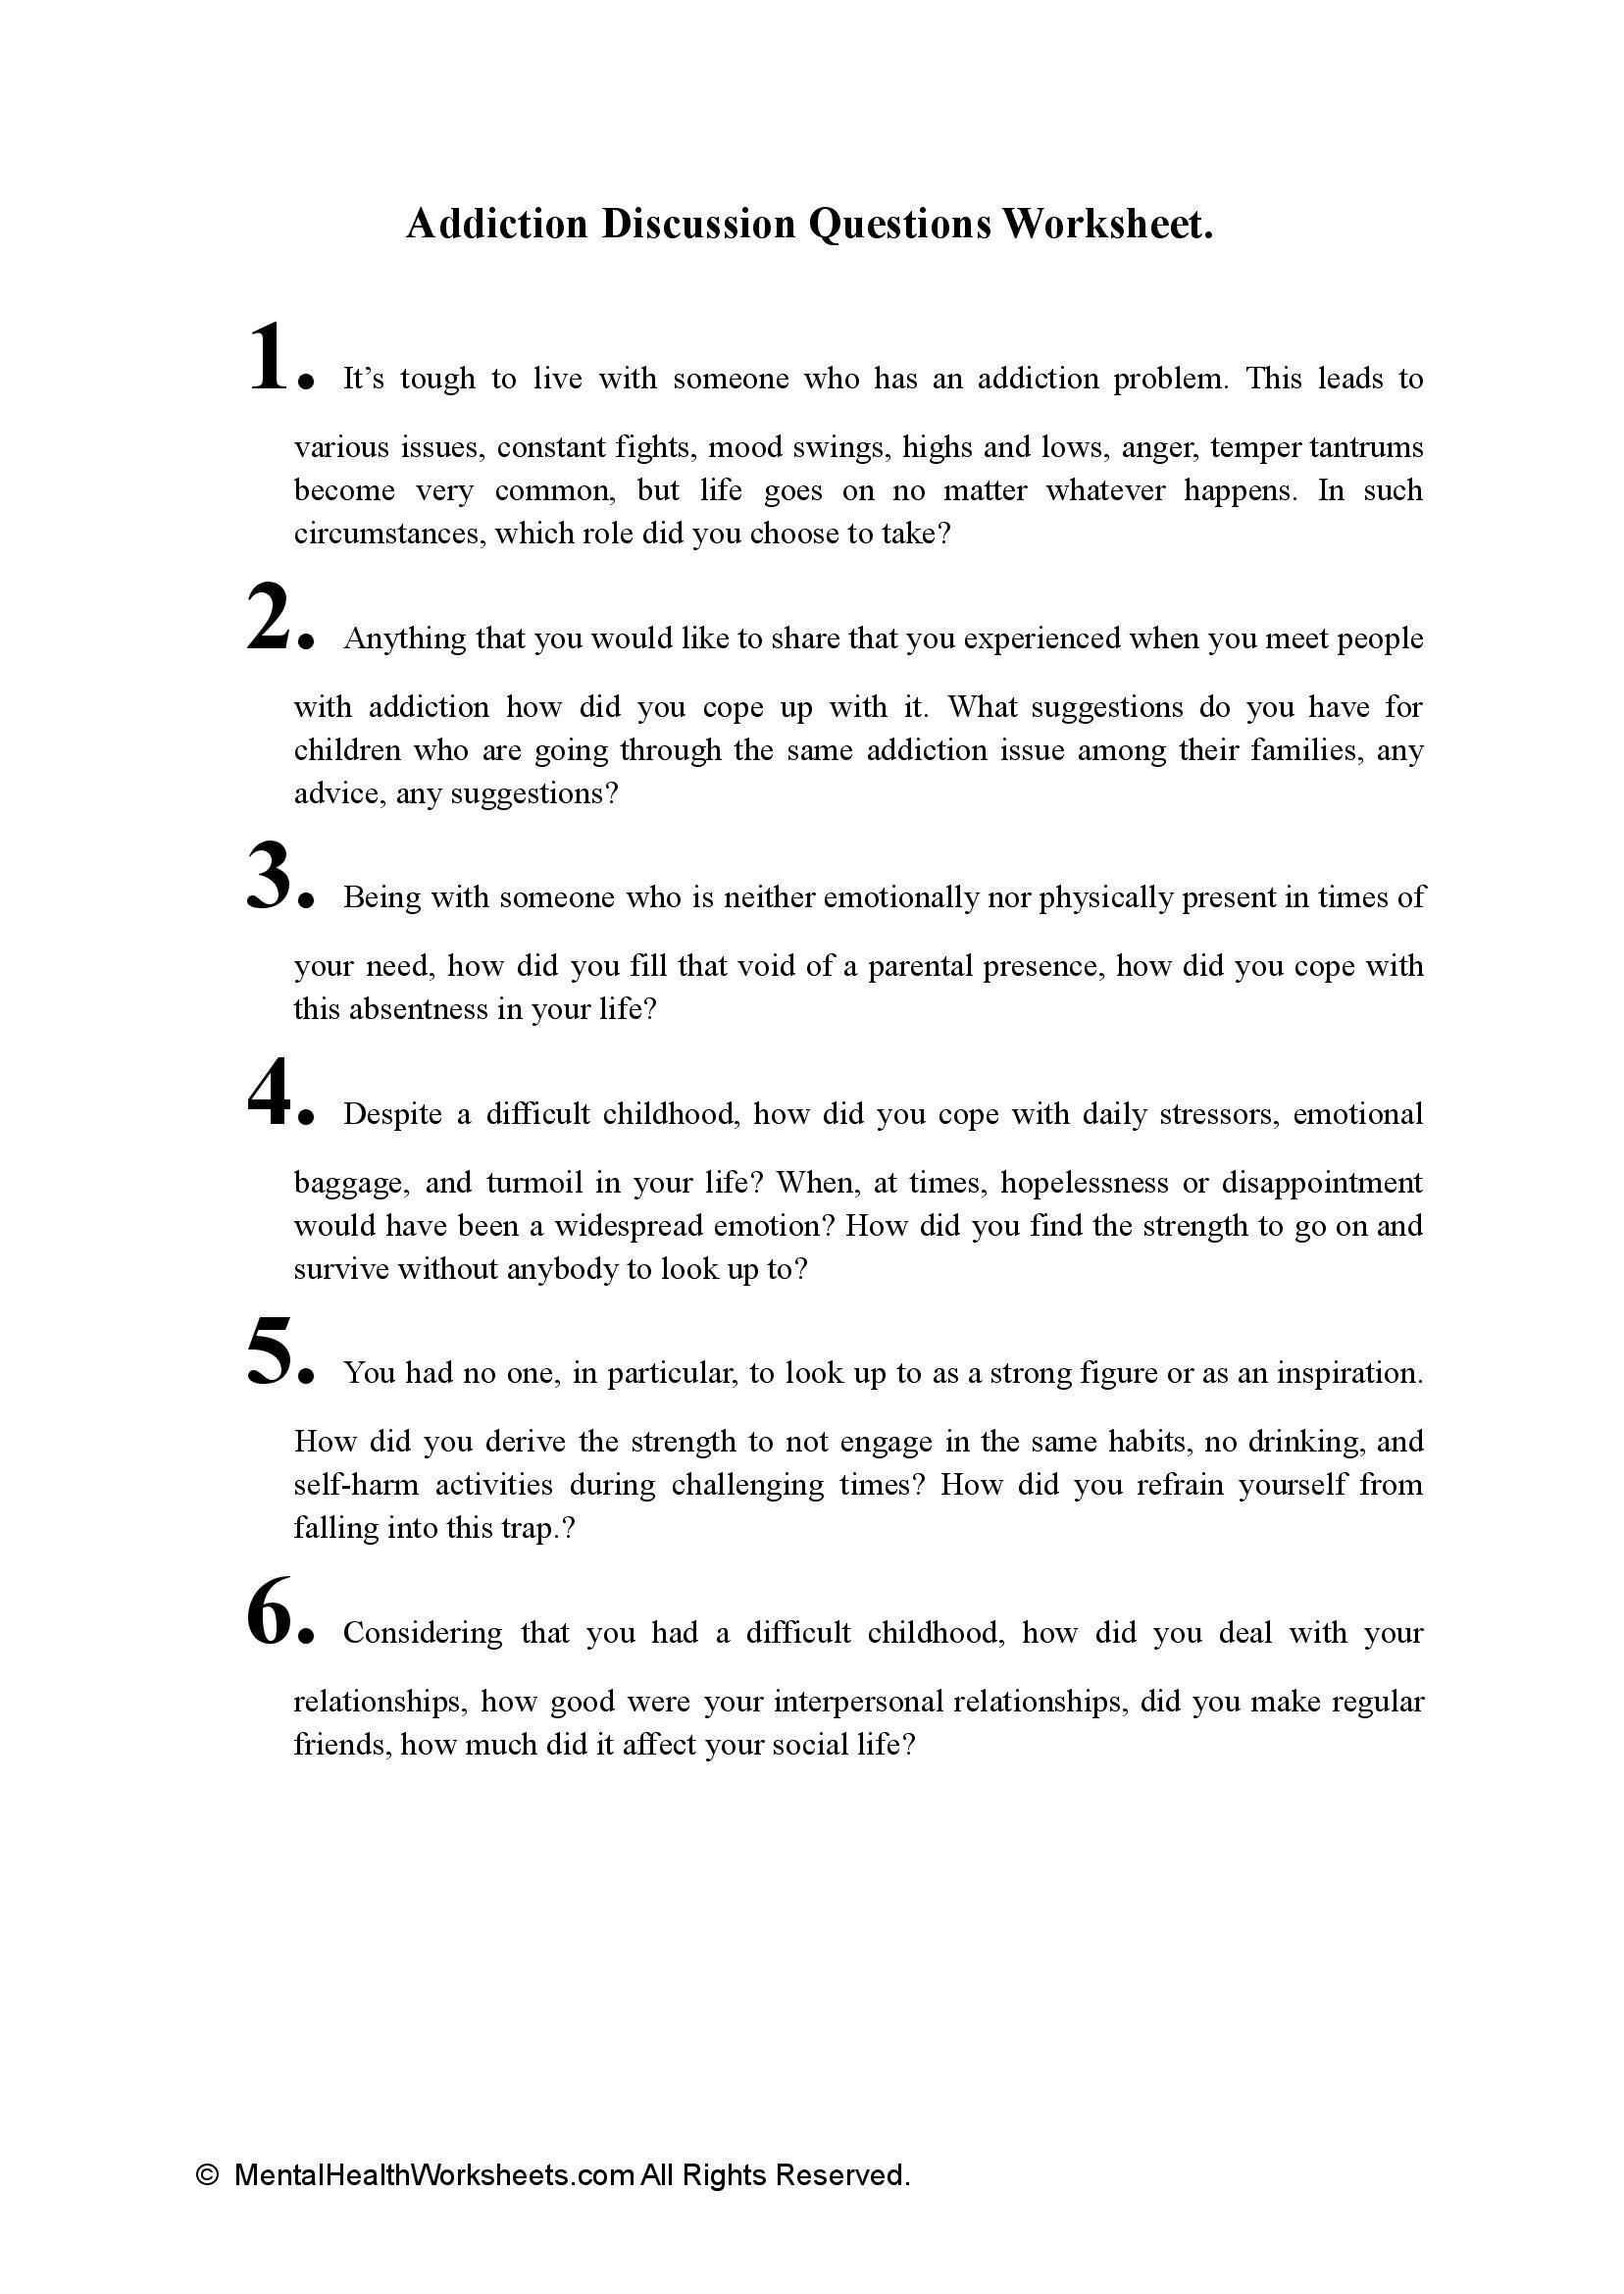 Addiction Discussion Questions Worksheet